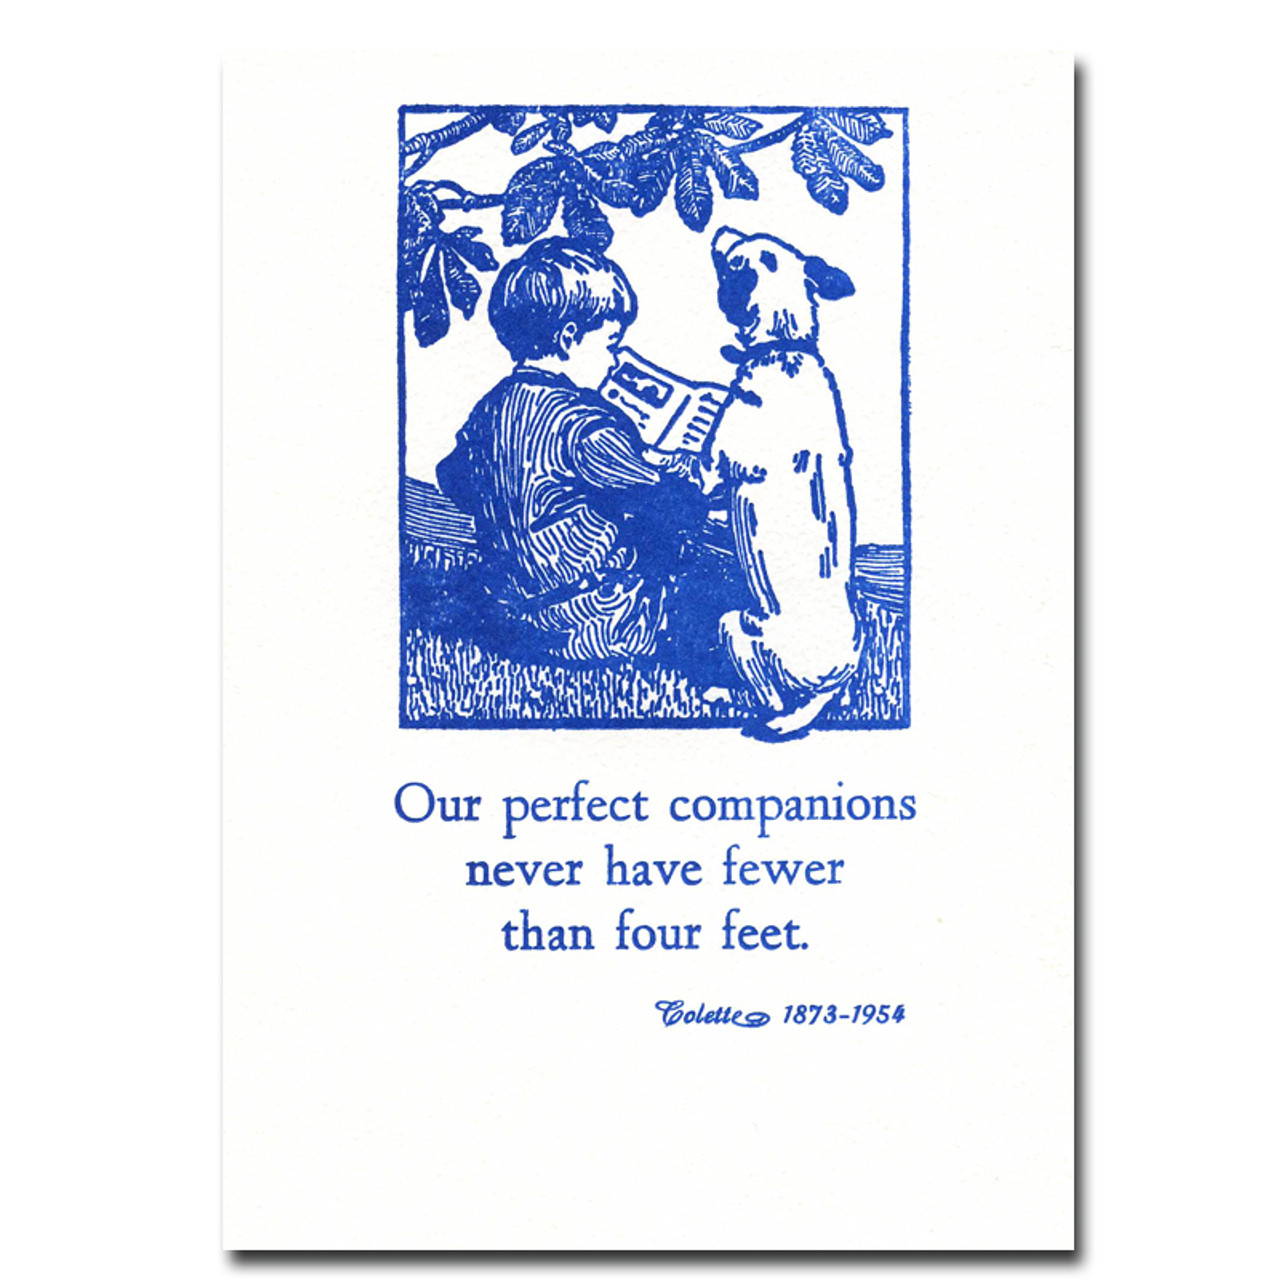 """Saturn Press Quotation Card """"Perfect Companions: Colette"""" Cover shows vintage illustration of a boy reading to his dog with a quotation by Colette: """"Our perfect companions never have fewer than four feet."""""""